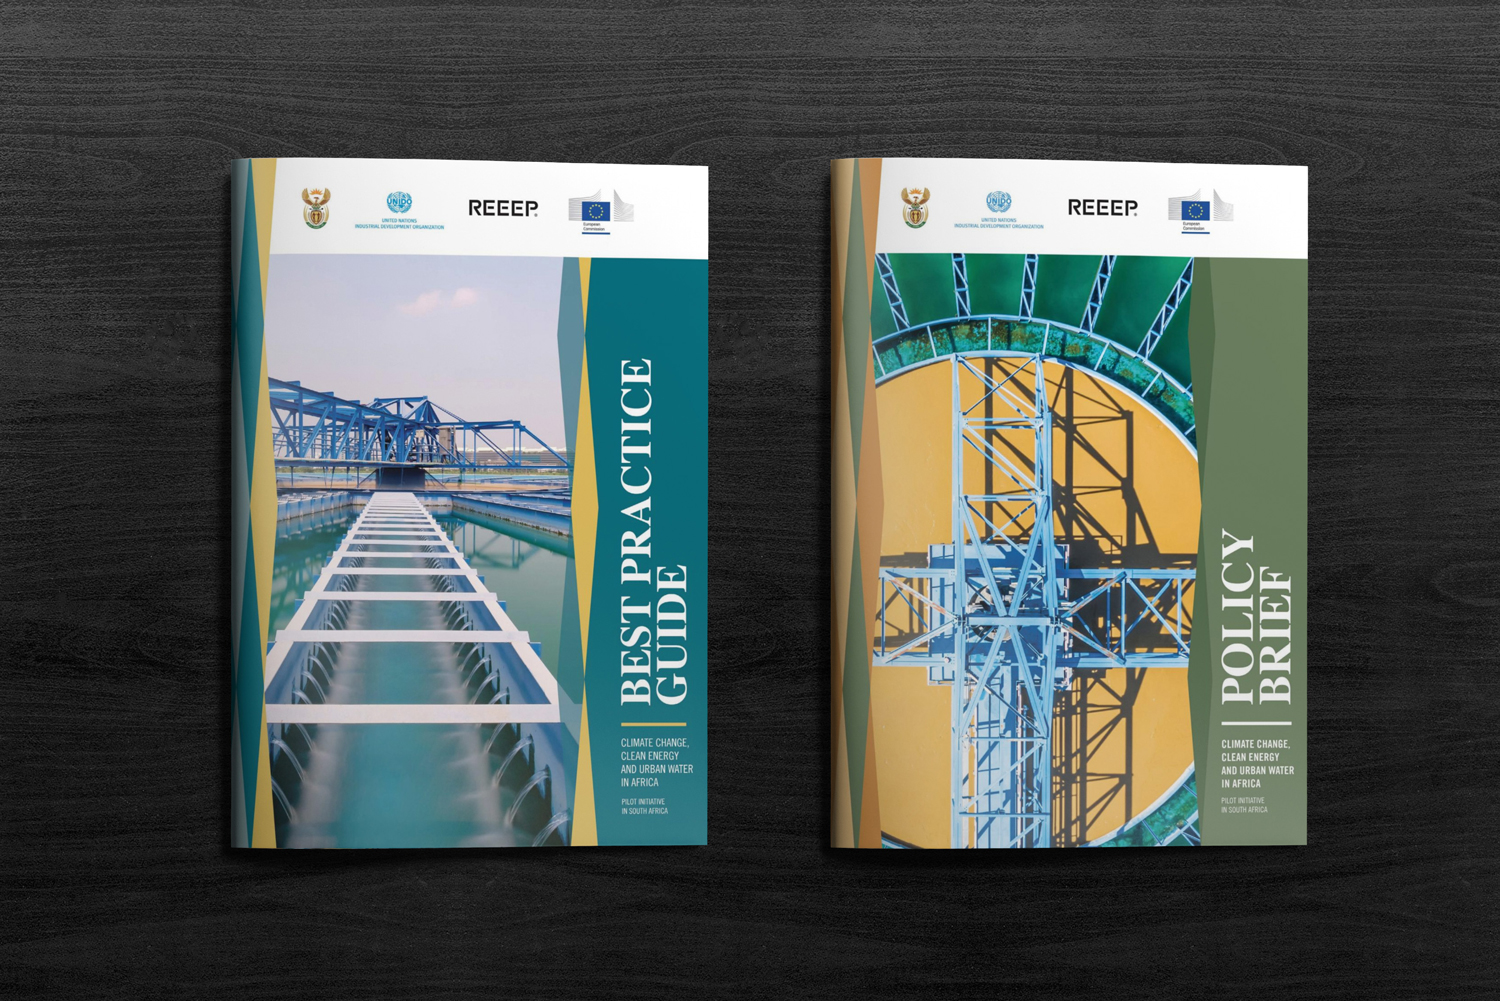 REEEP Best Practice Guide Insert Graphic Design by Agent Orange South Africa